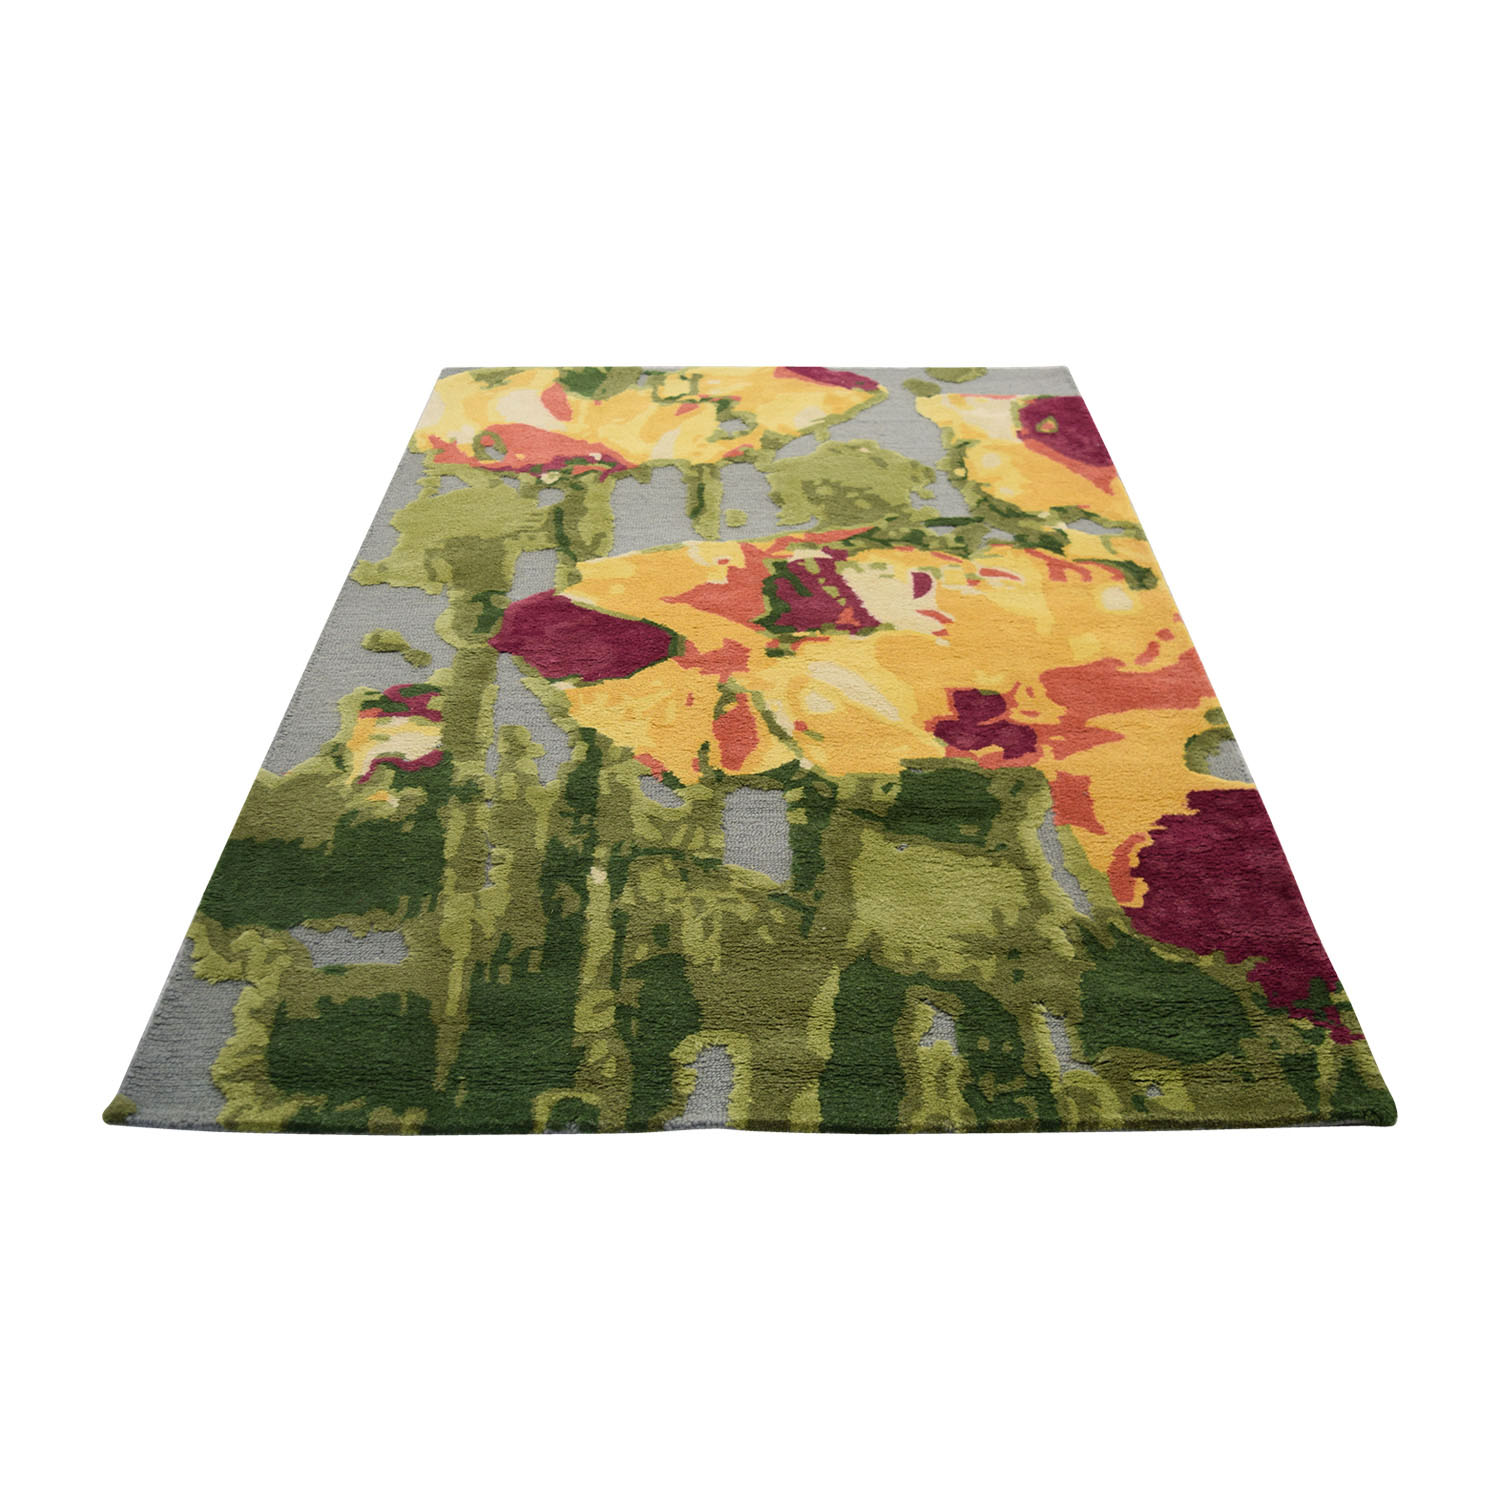 Obeetee Obeetee 5 X 8 Orange Green Pink Yellow and Grey Wool Rug with High and Low Pile dimensions